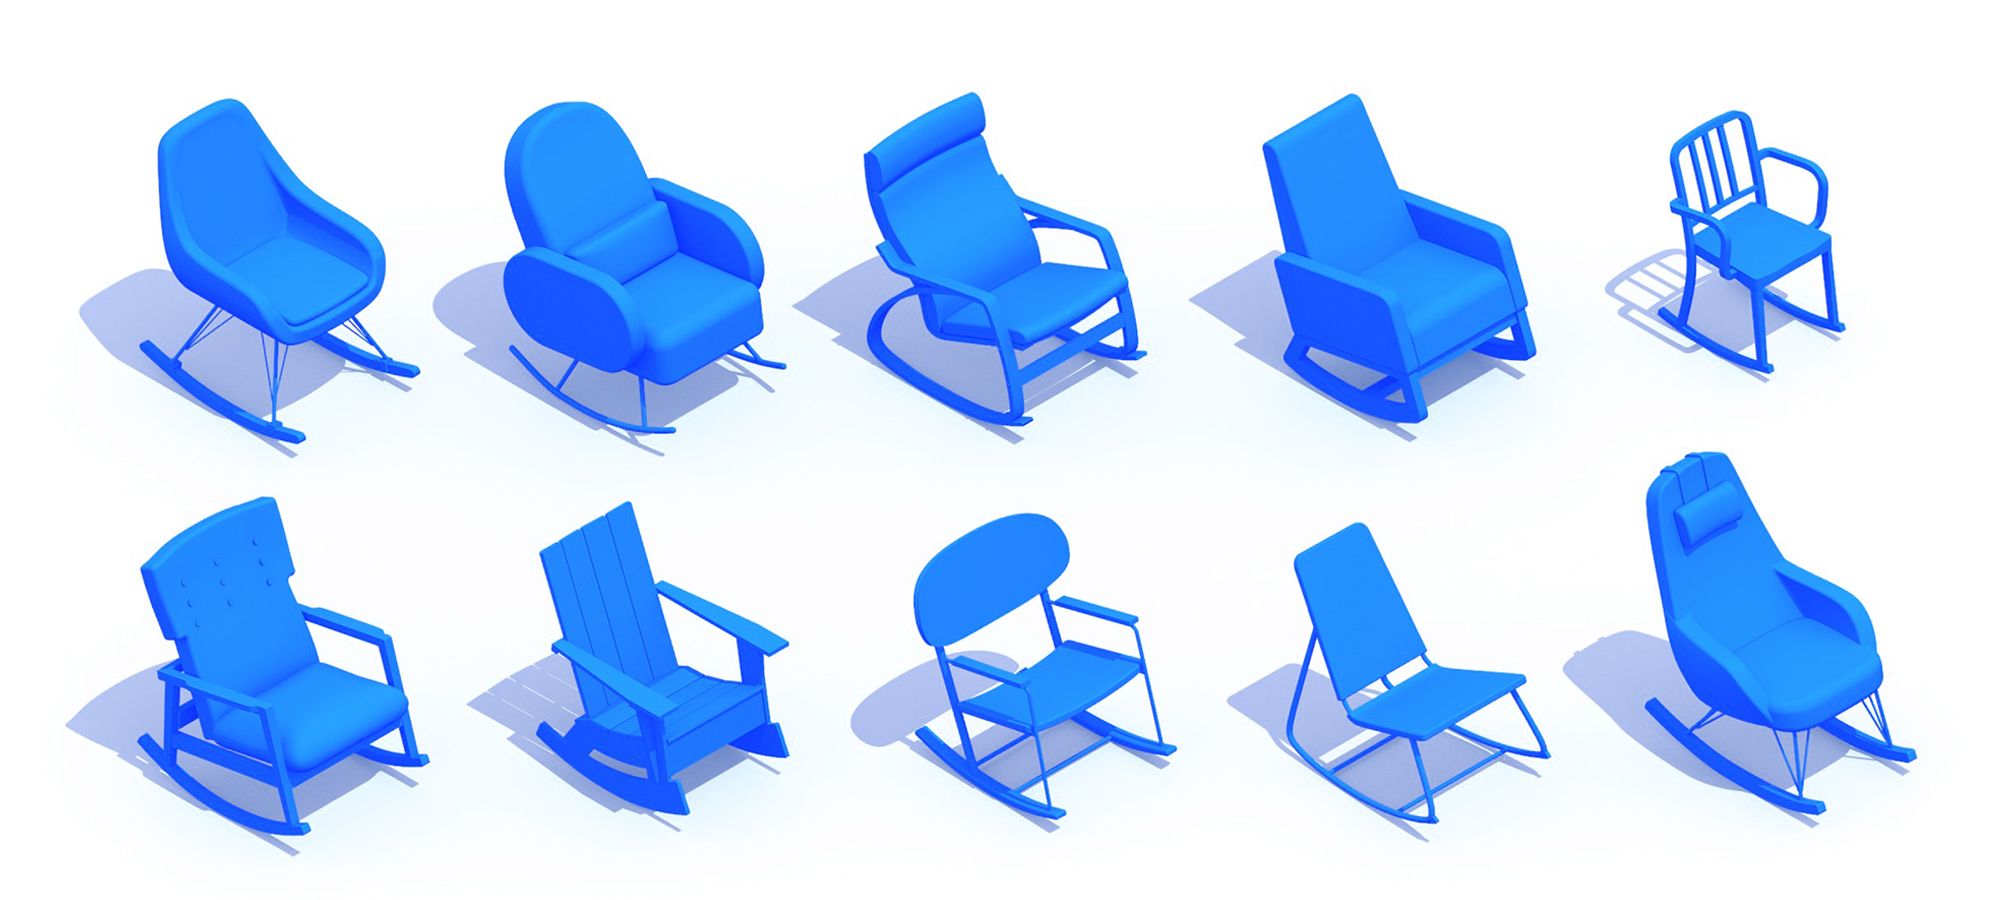 Collection of 3D Rocking Chairs showing a diversity of sizes, styles, and types